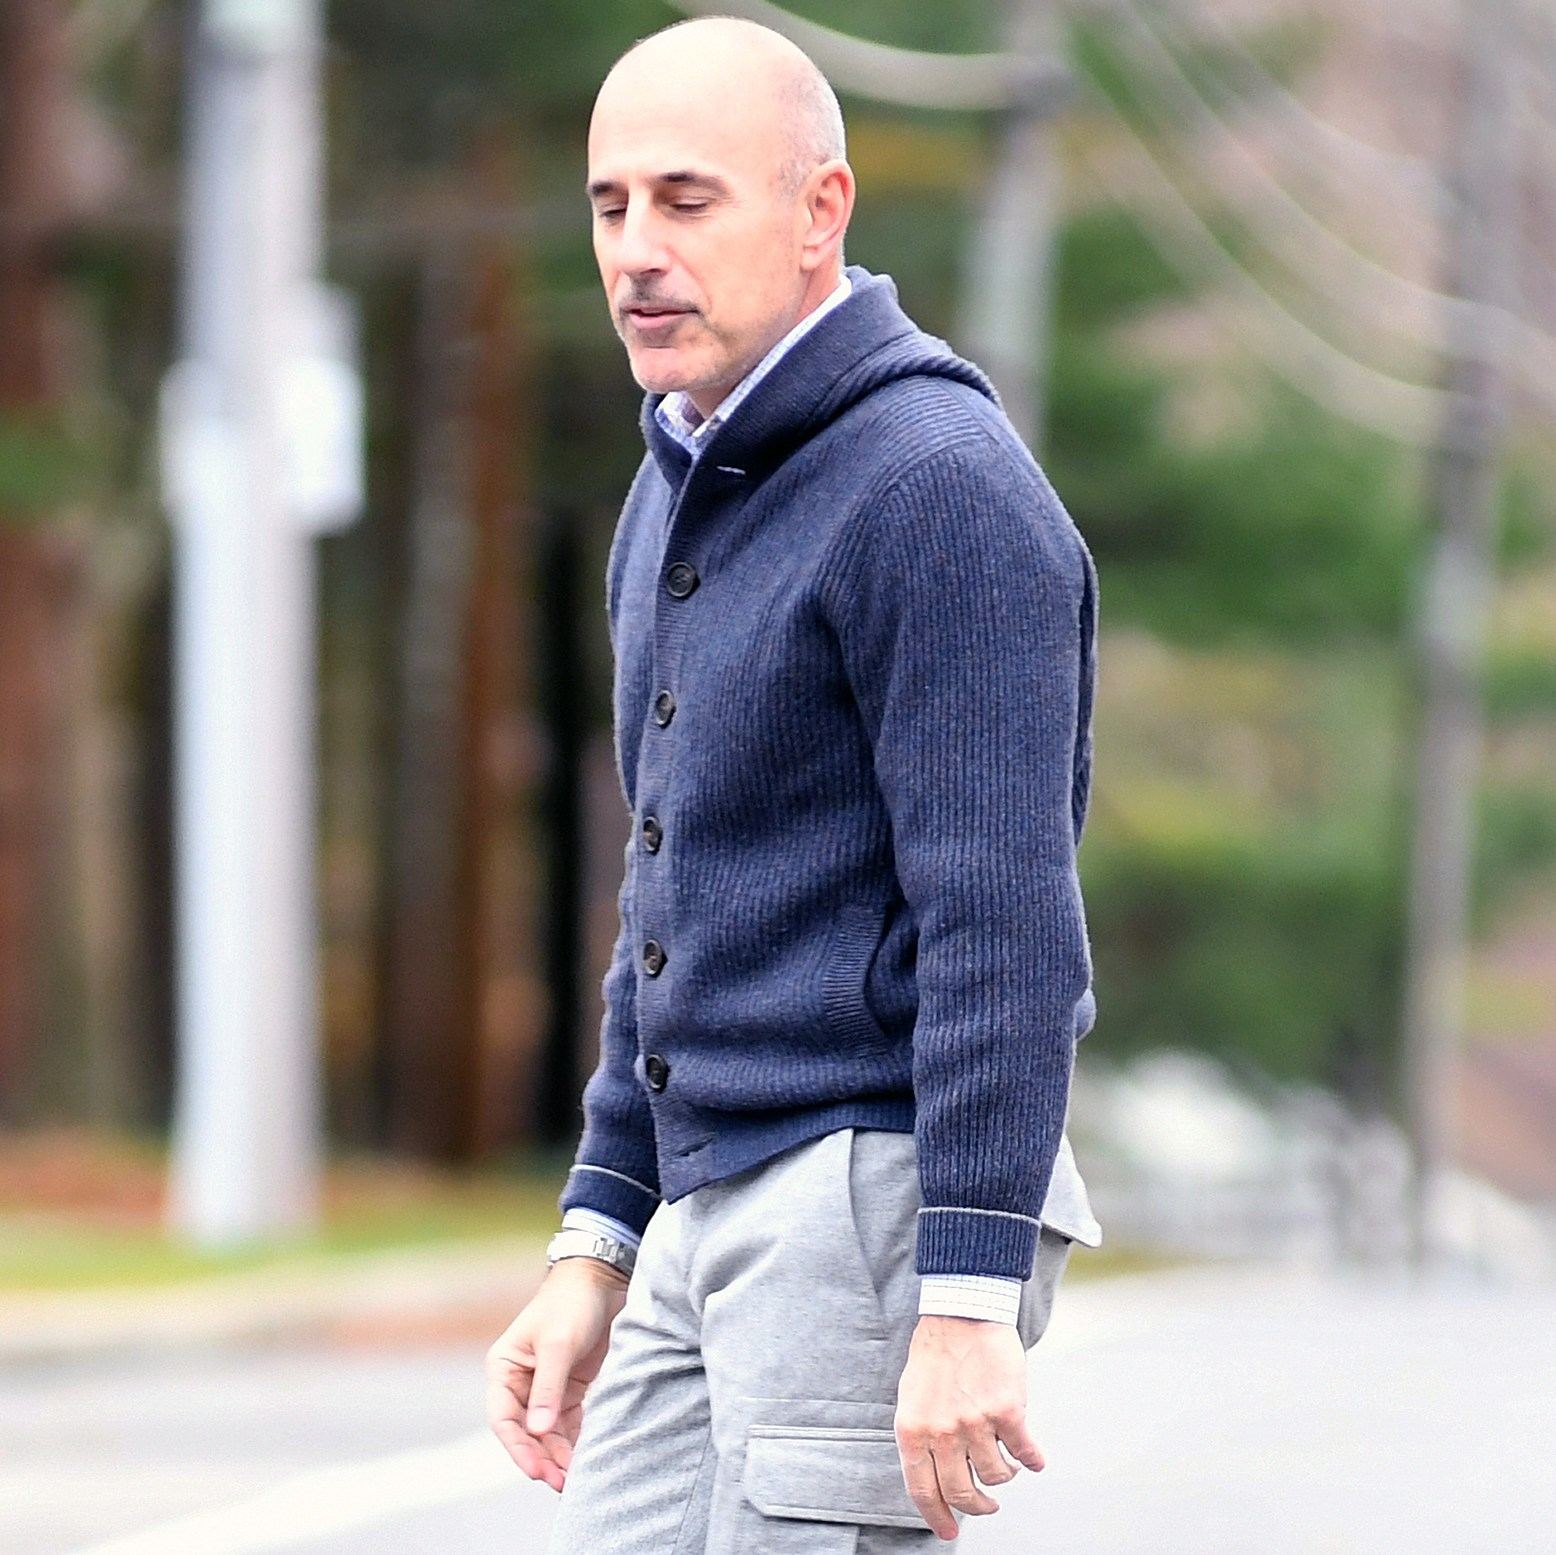 Matt Lauer no wedding ring